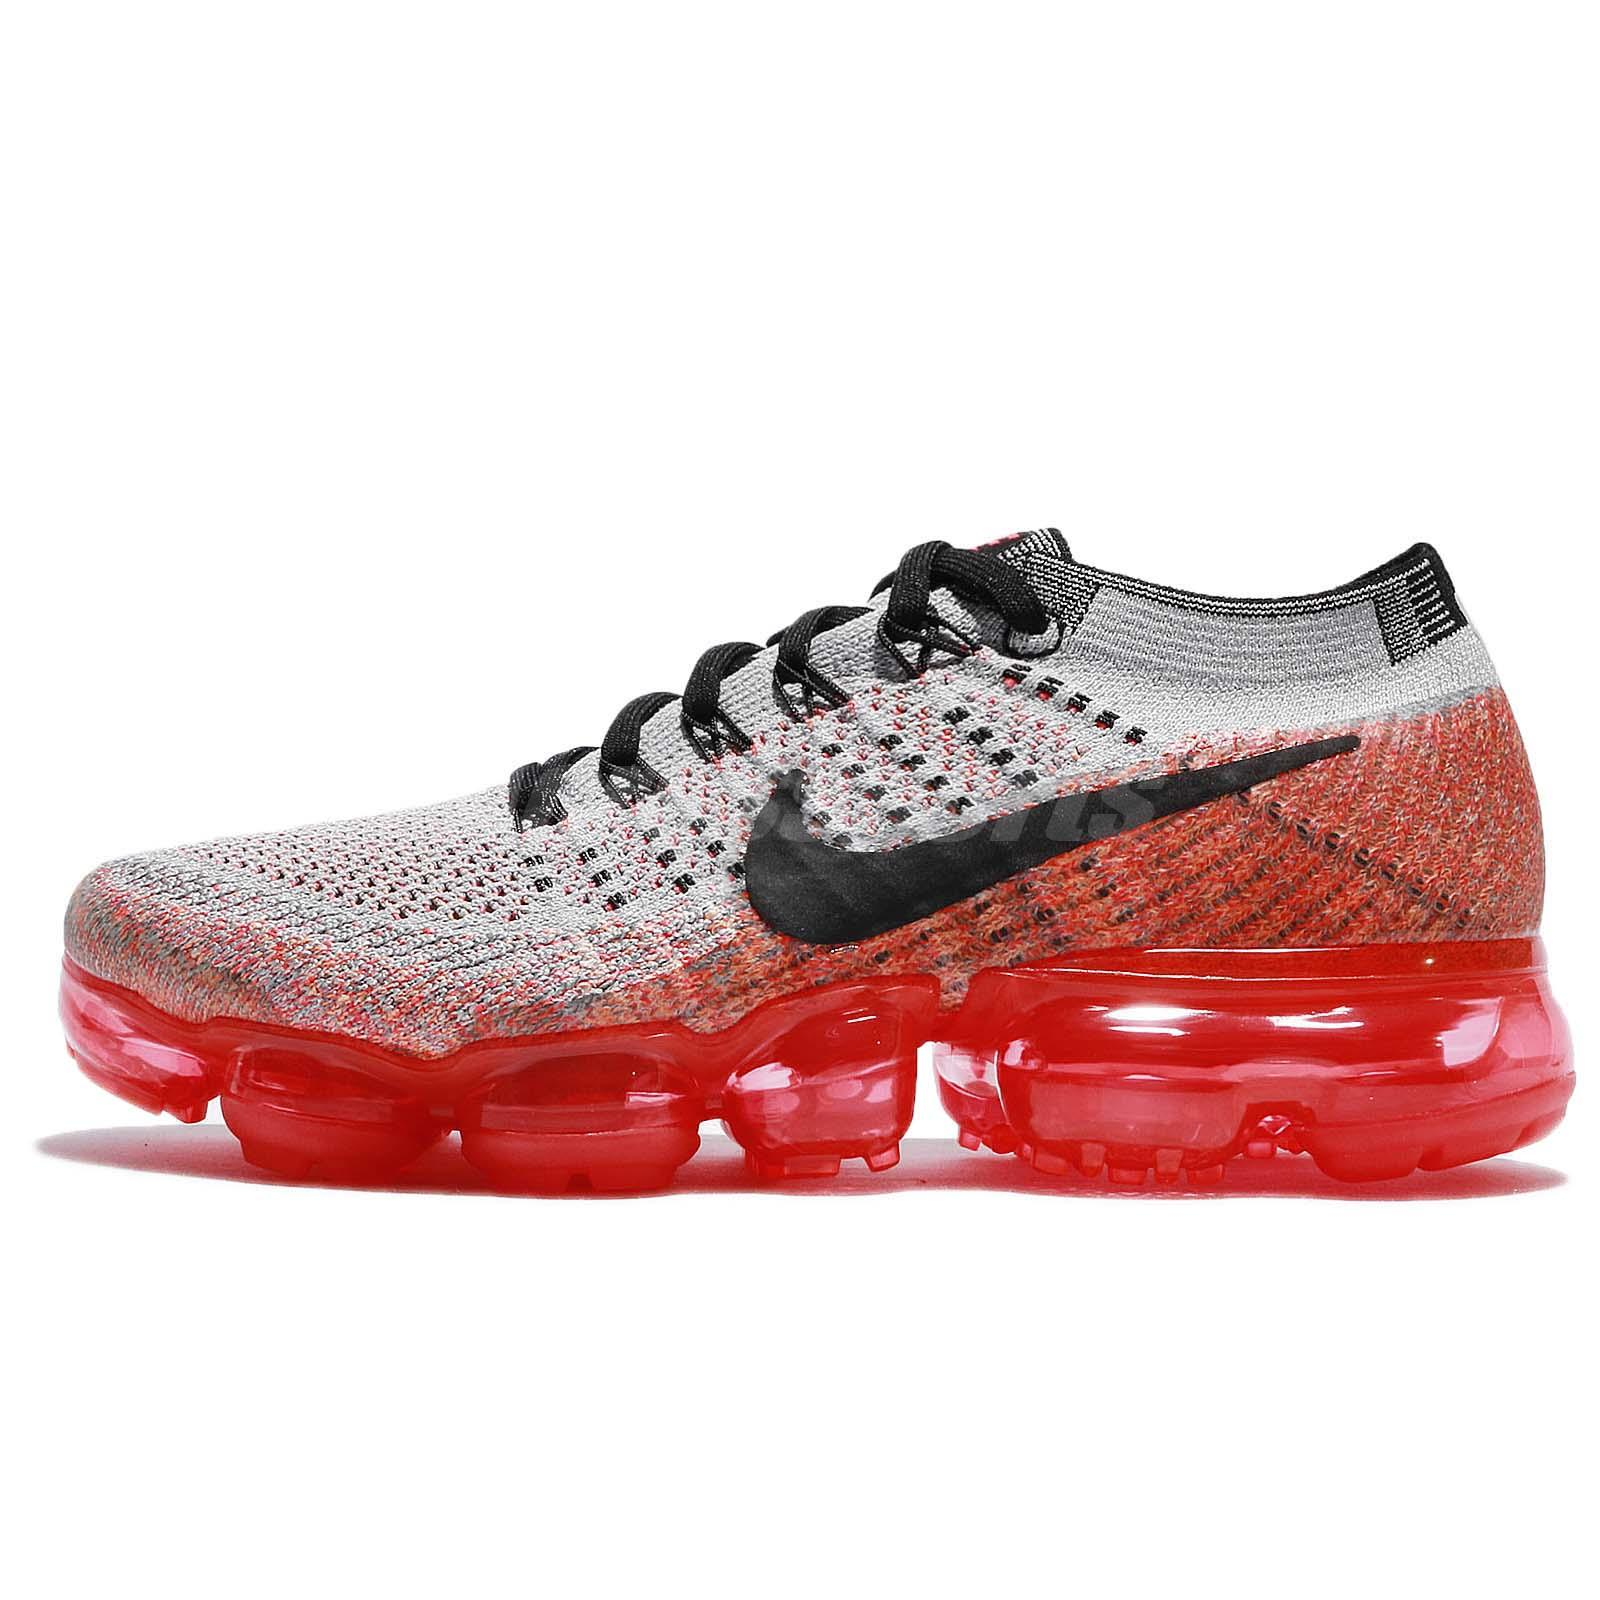 Wmns Nike Air Vapormax Flyknit Wolf Grey Red Crimson Women Running